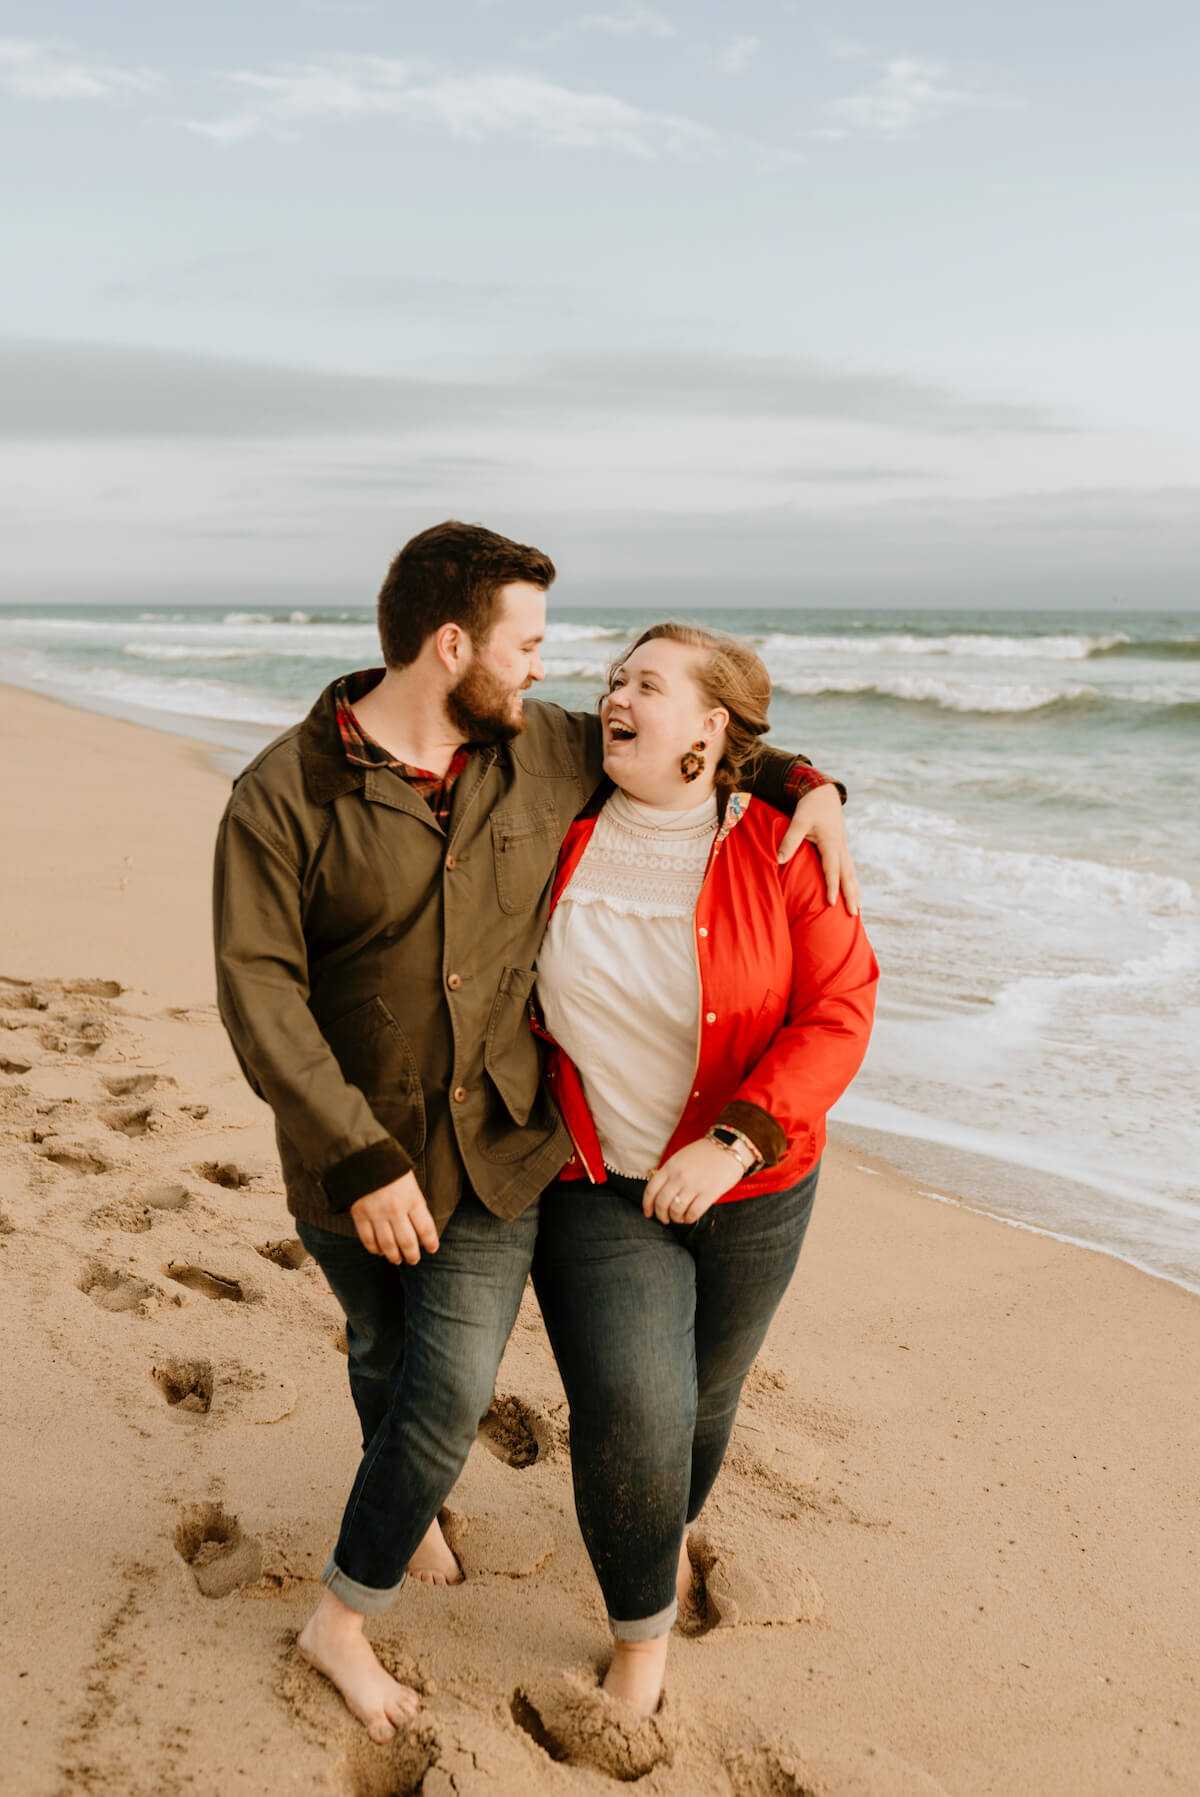 Marriage proposal on the beach in Nantucket